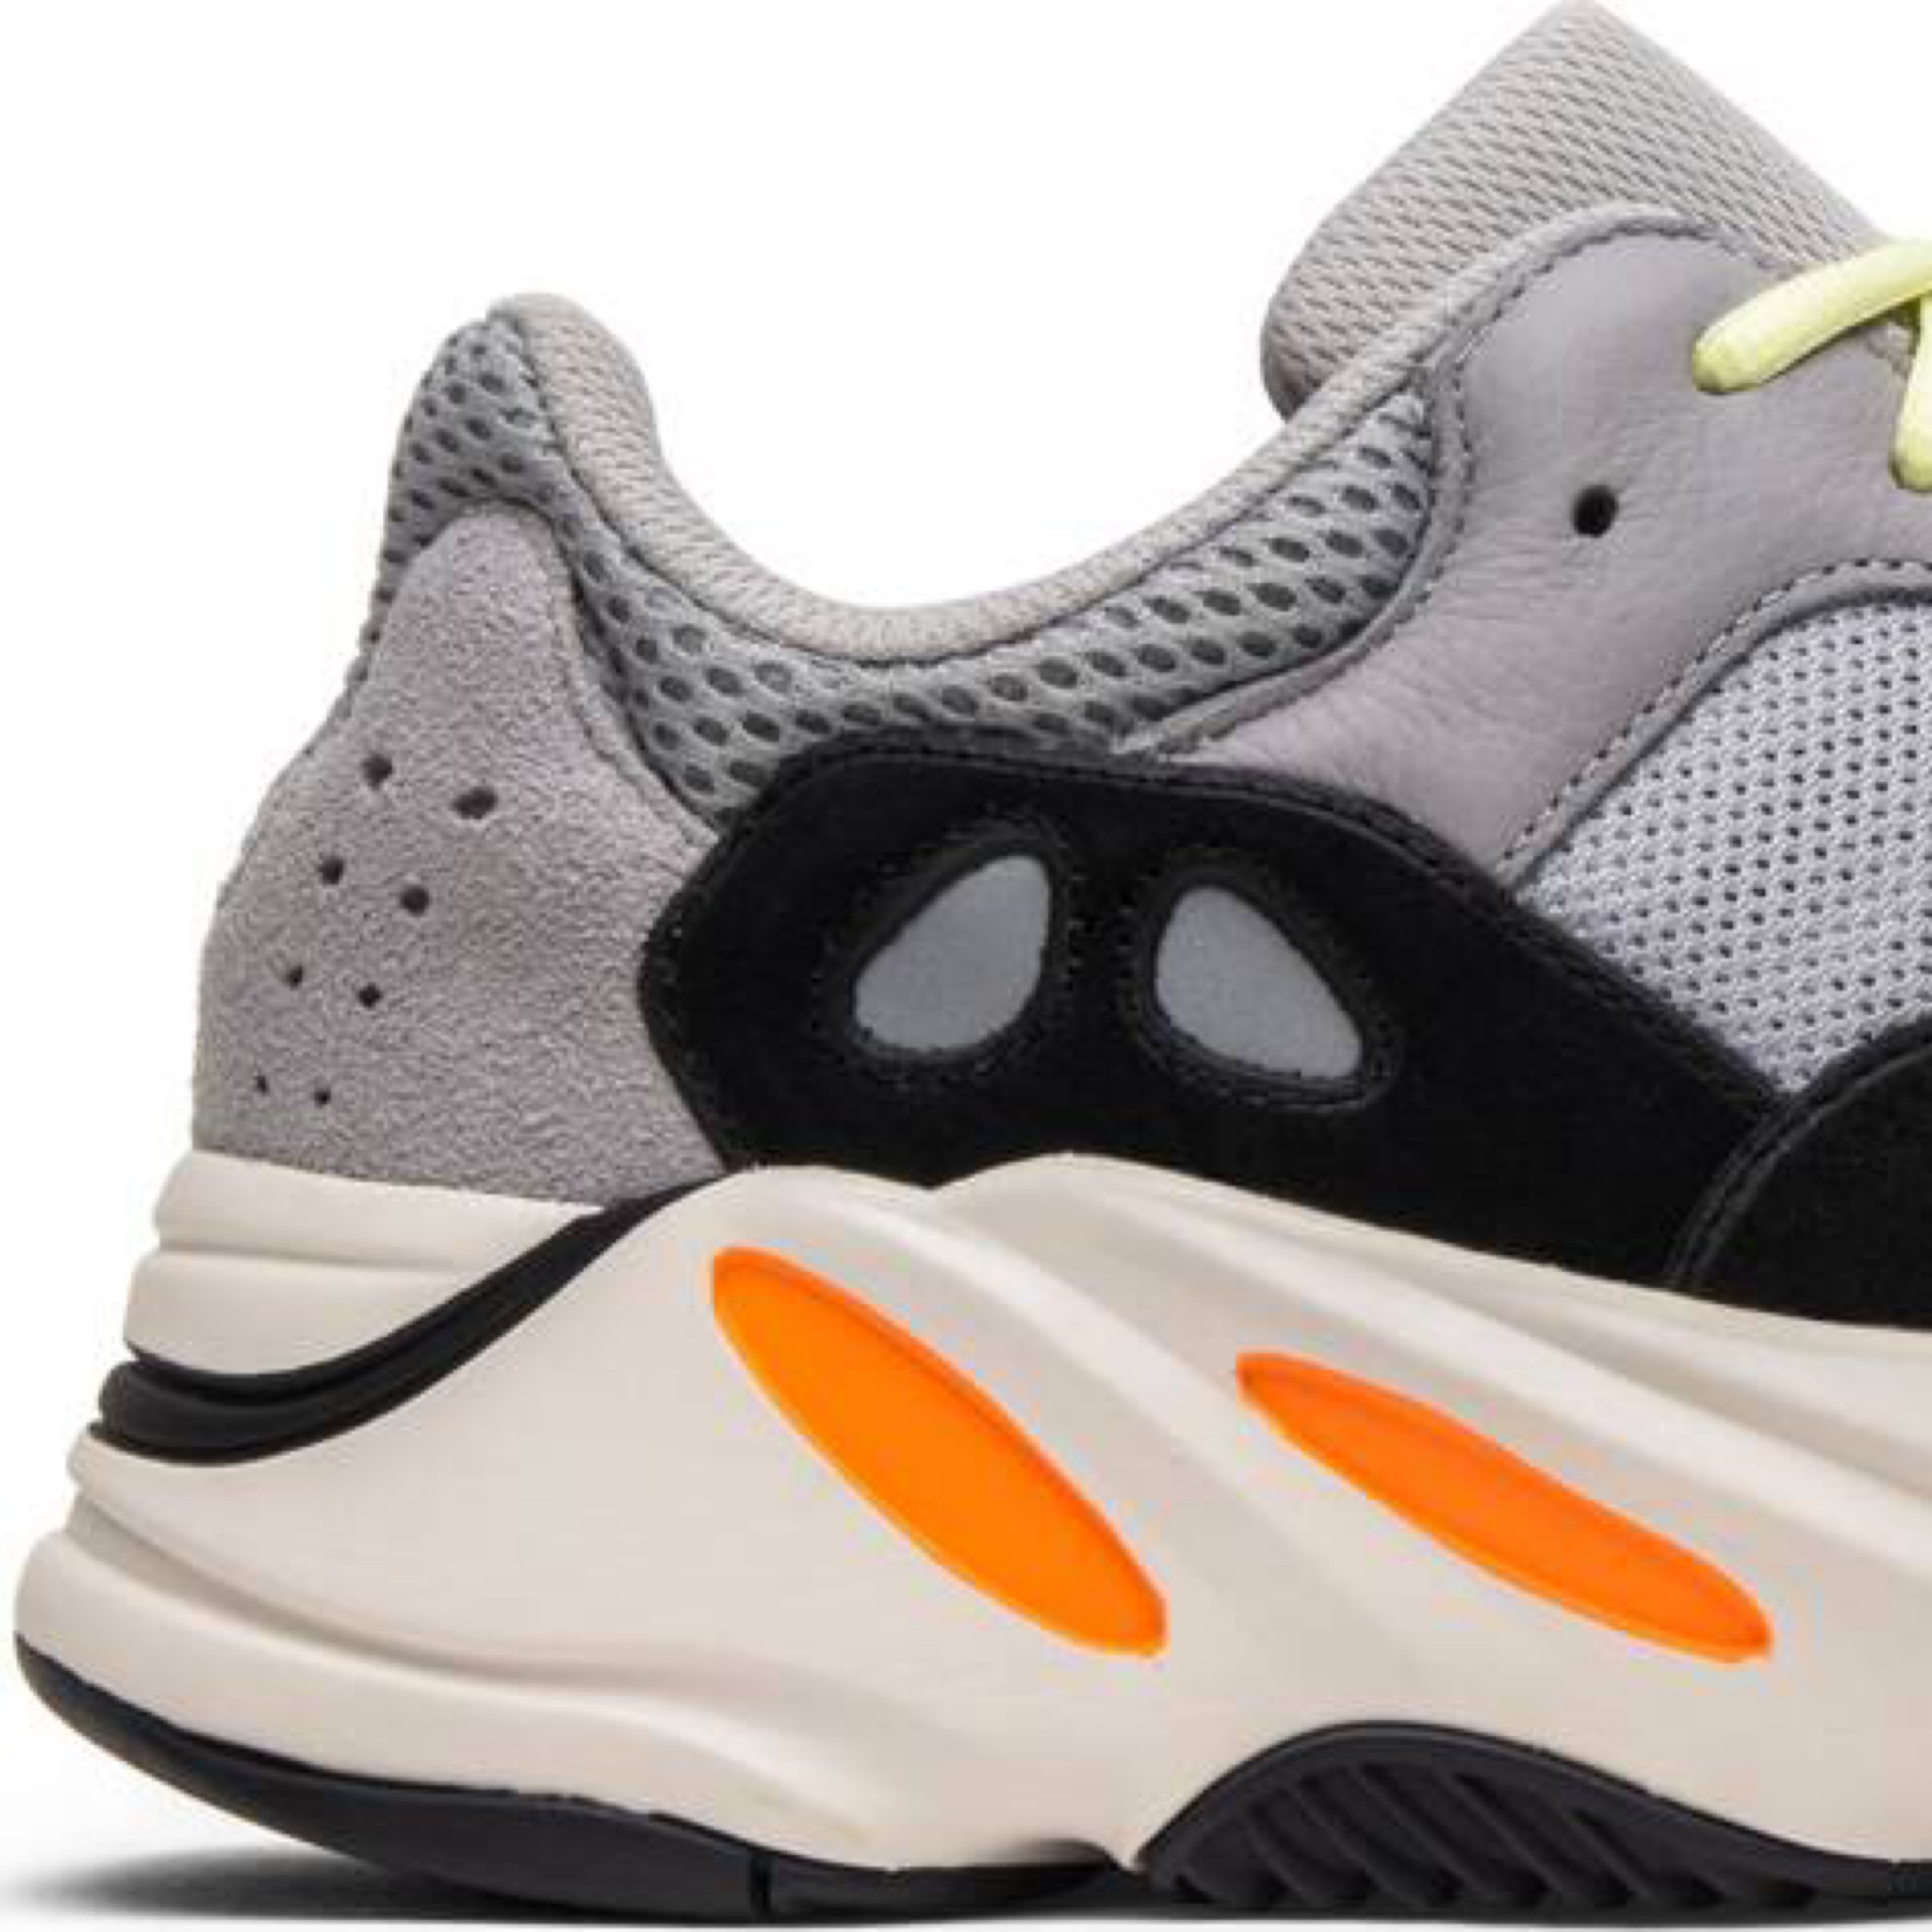 on sale e41f4 31517 Trade Gucci-Yeezy 700